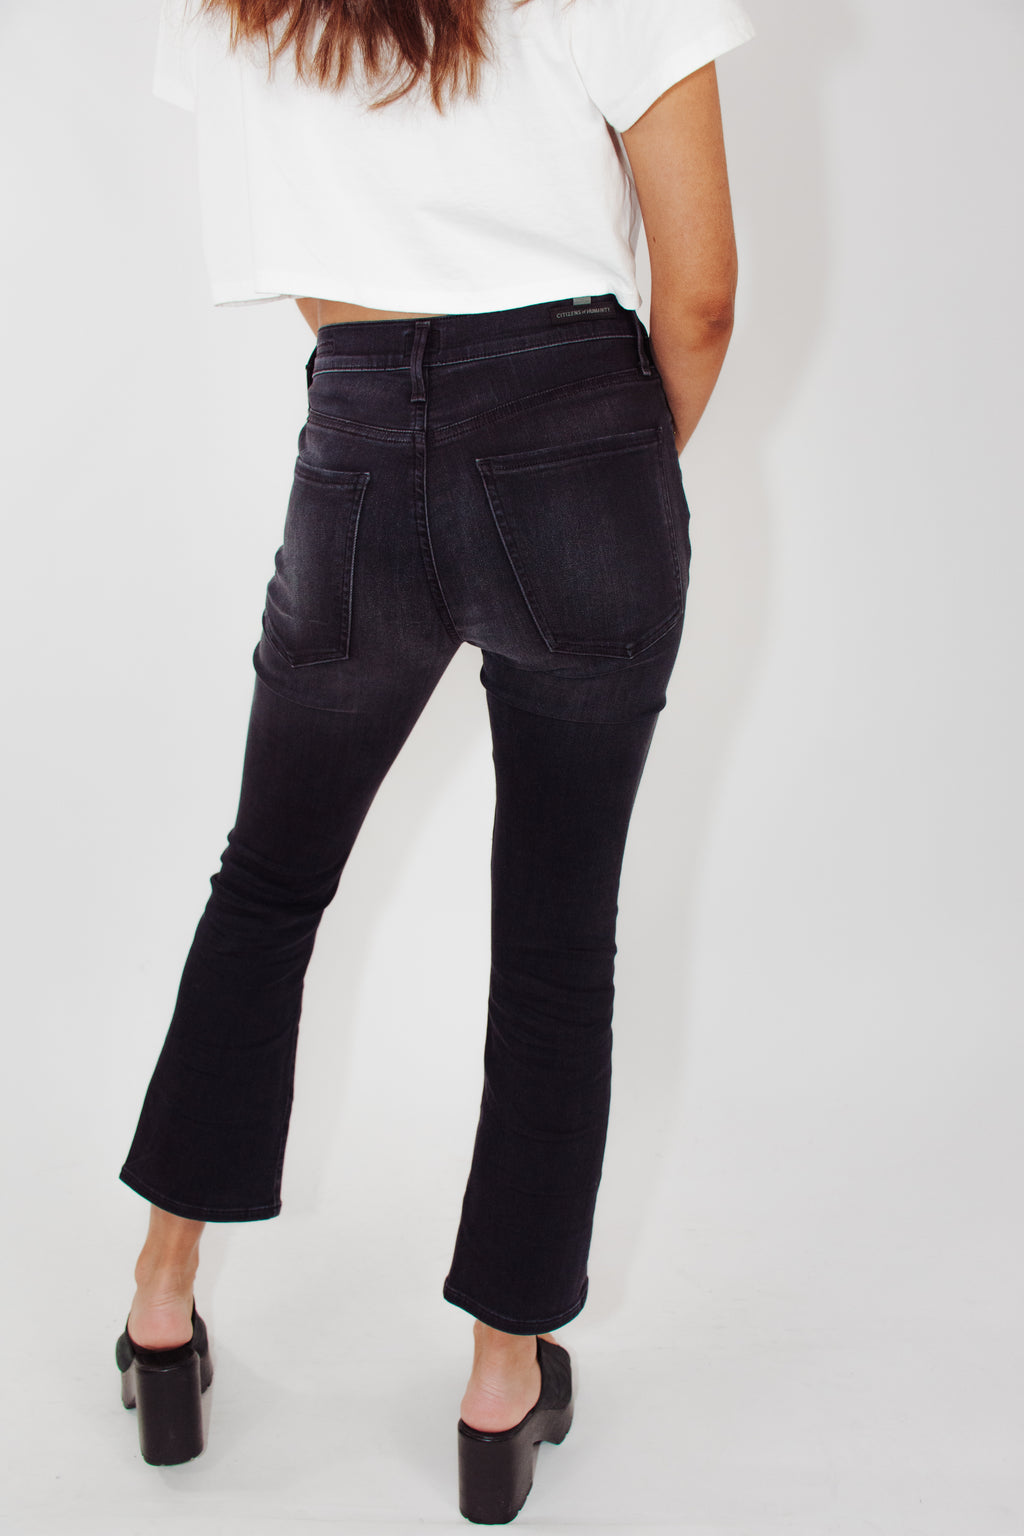 Citizens of Humanity Jeans || Size 26